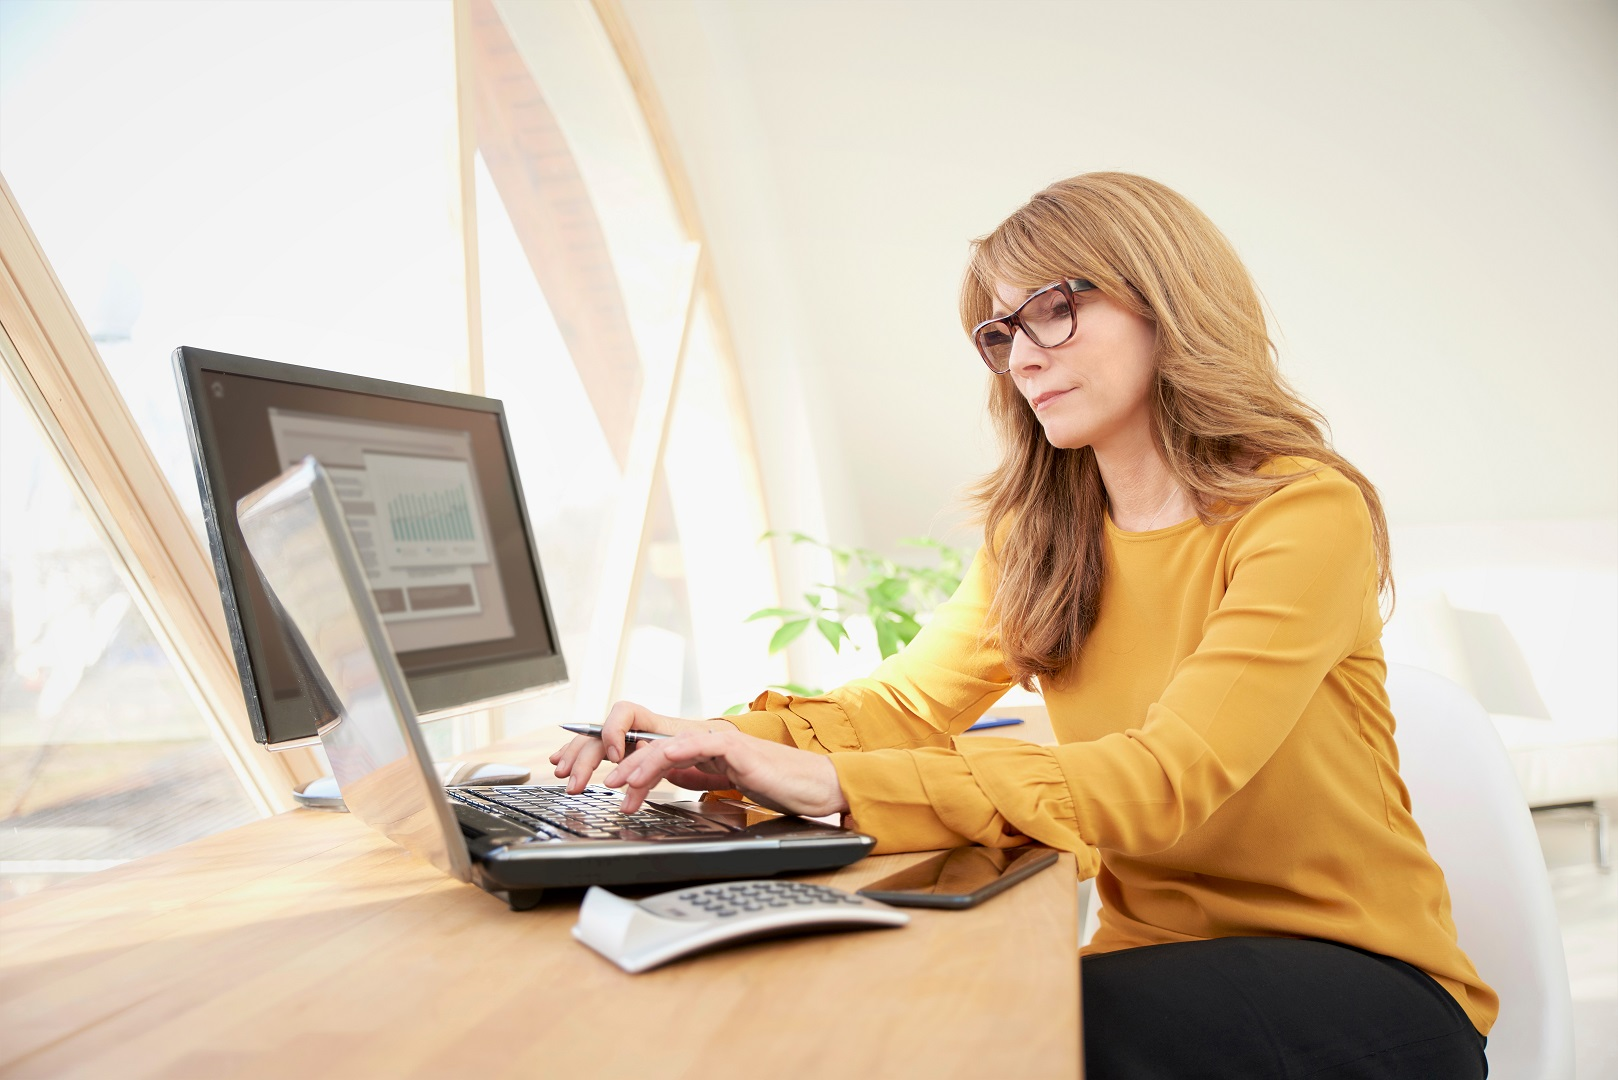 Yellow Shirt Woman Working on Laptop and Desktop